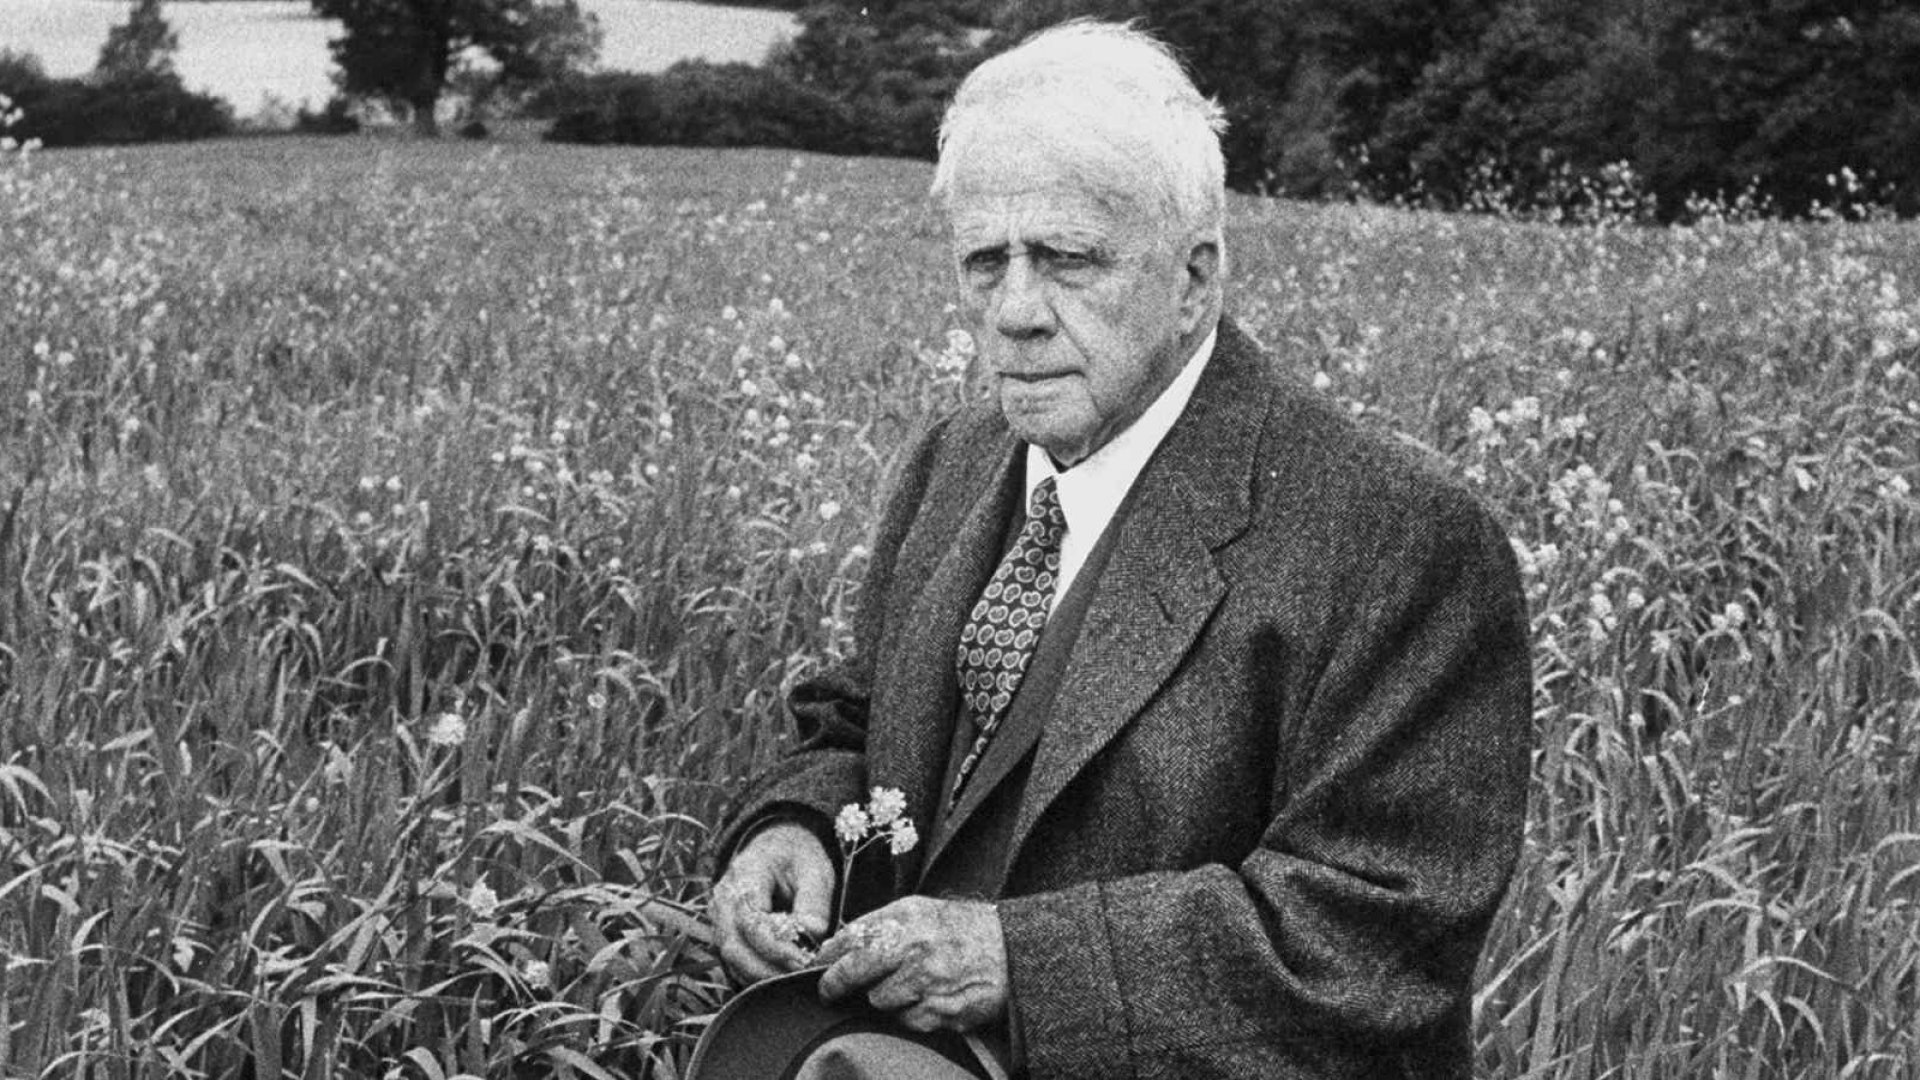 American poet, Robert Frost standing in meadow during visit to the Gloucester area of England where he lived as an expatriate poet.